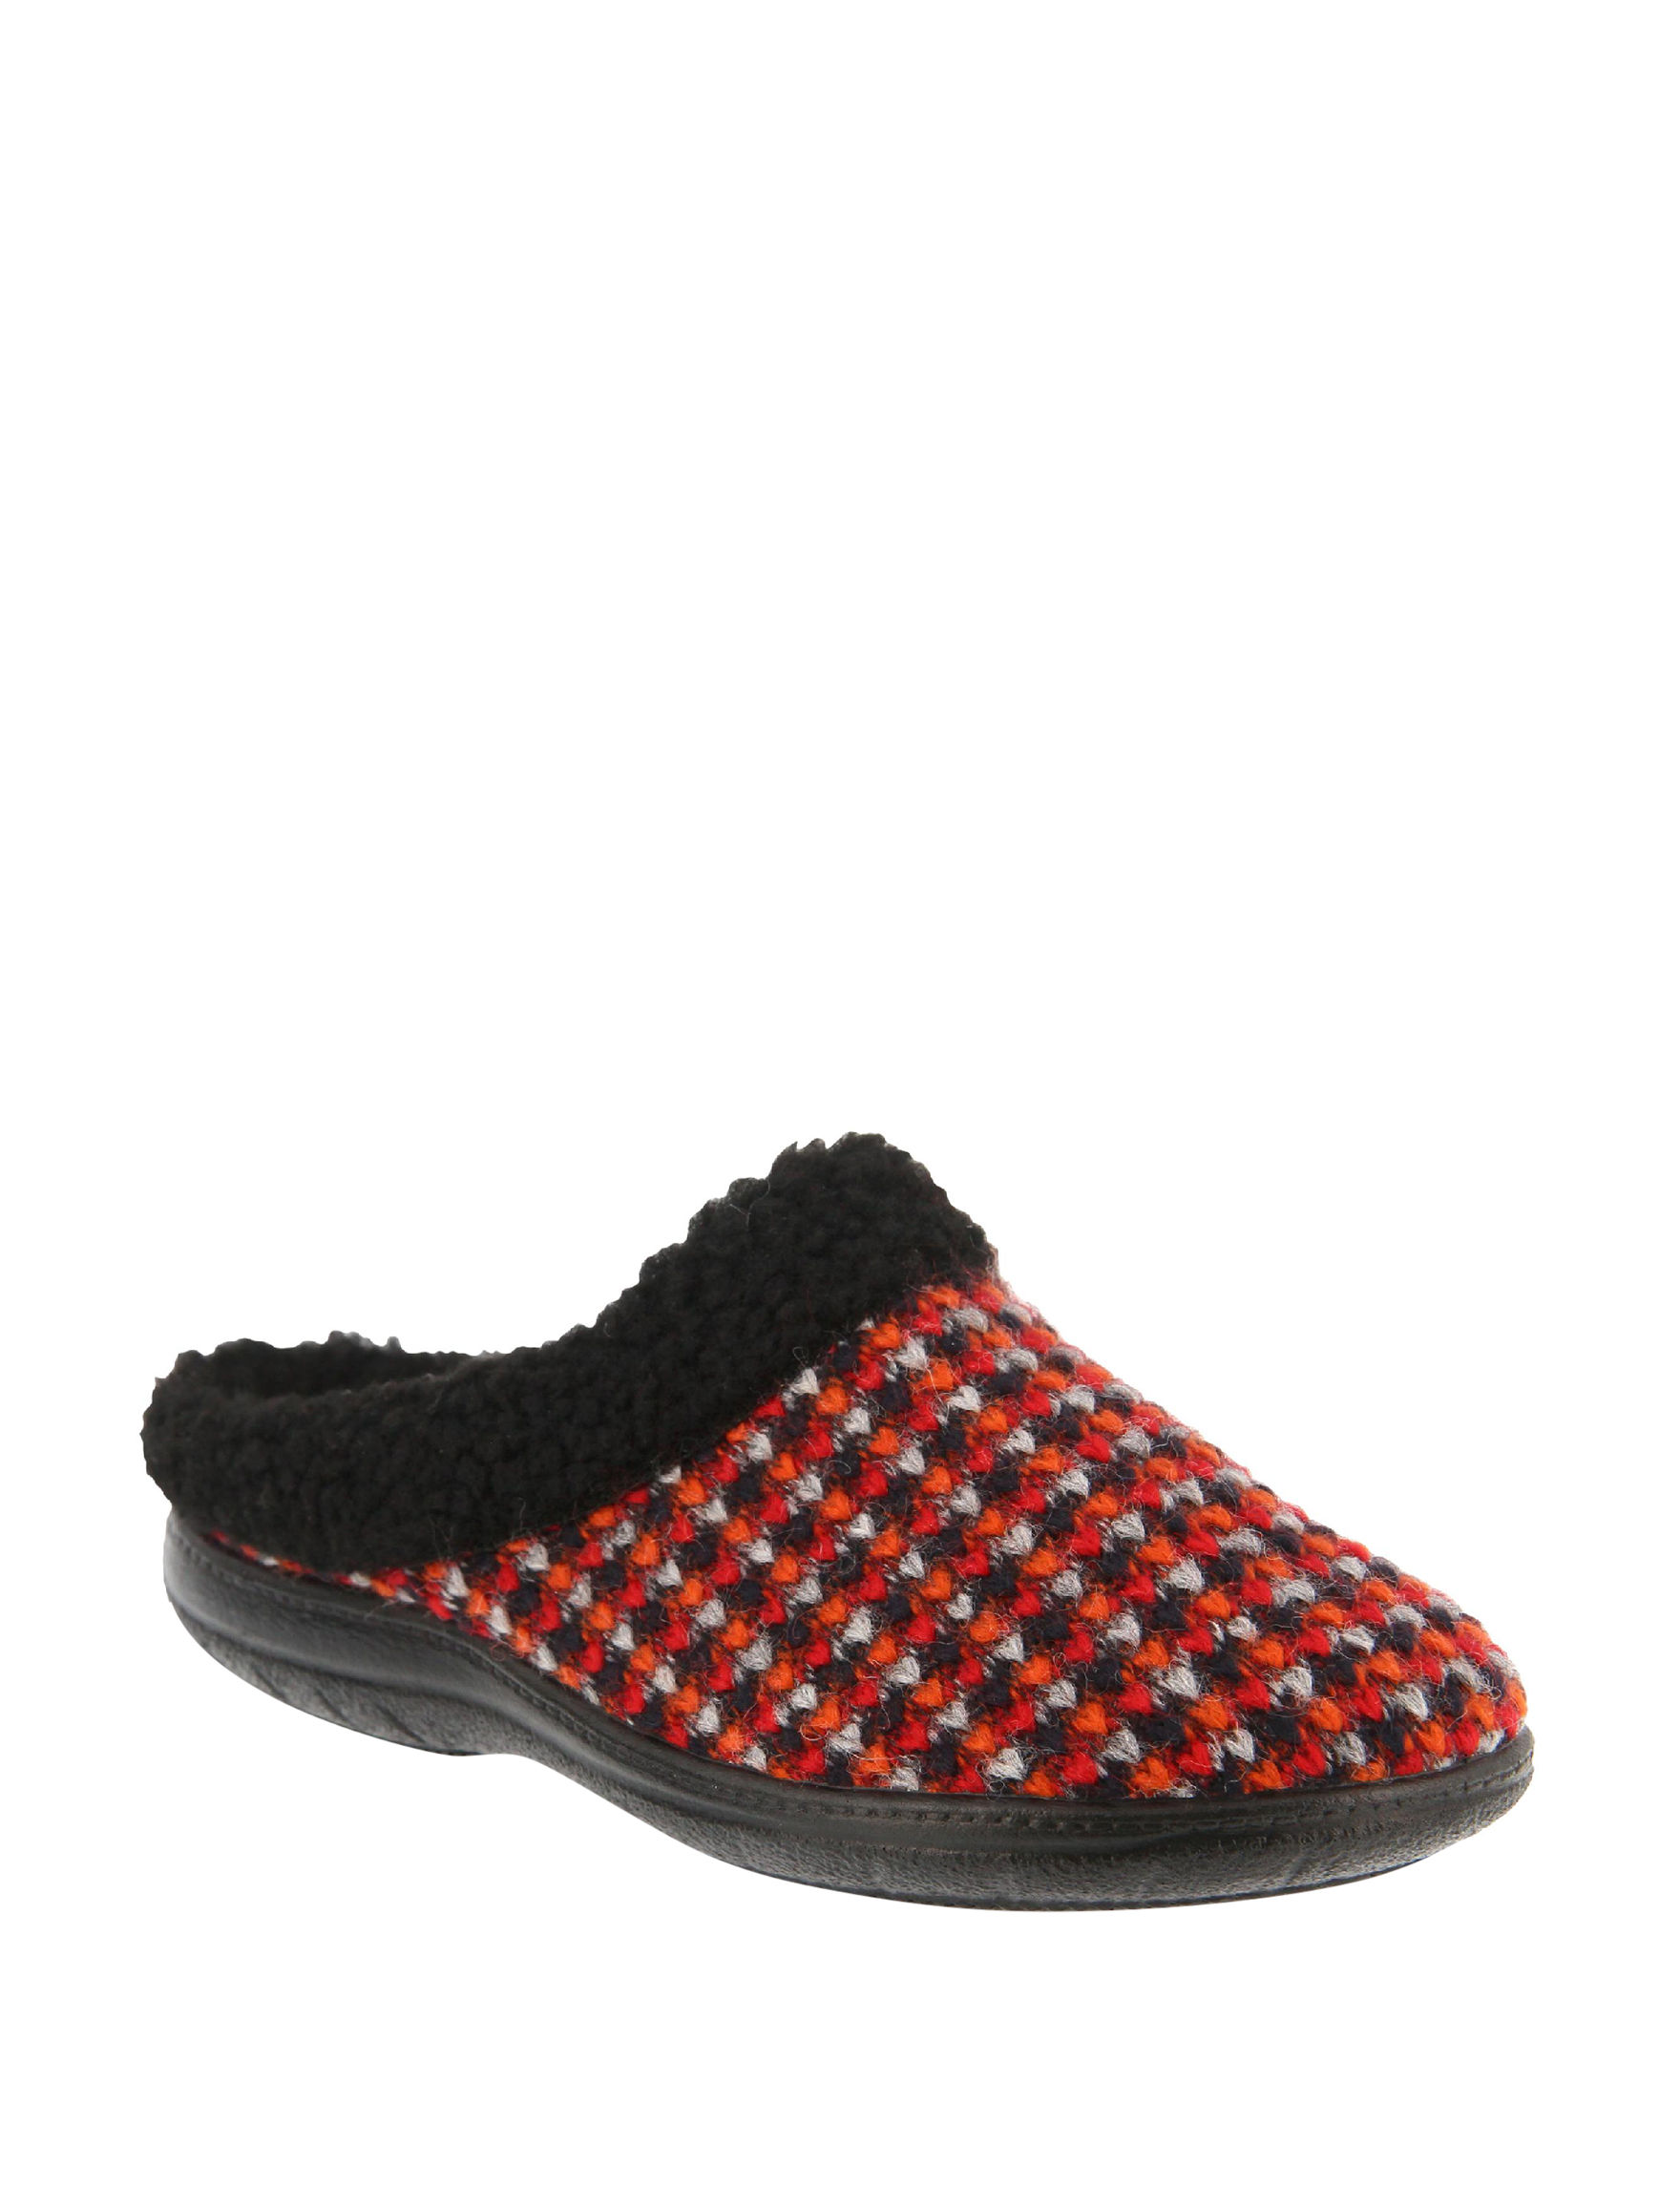 Flexus Red Slipper Shoes